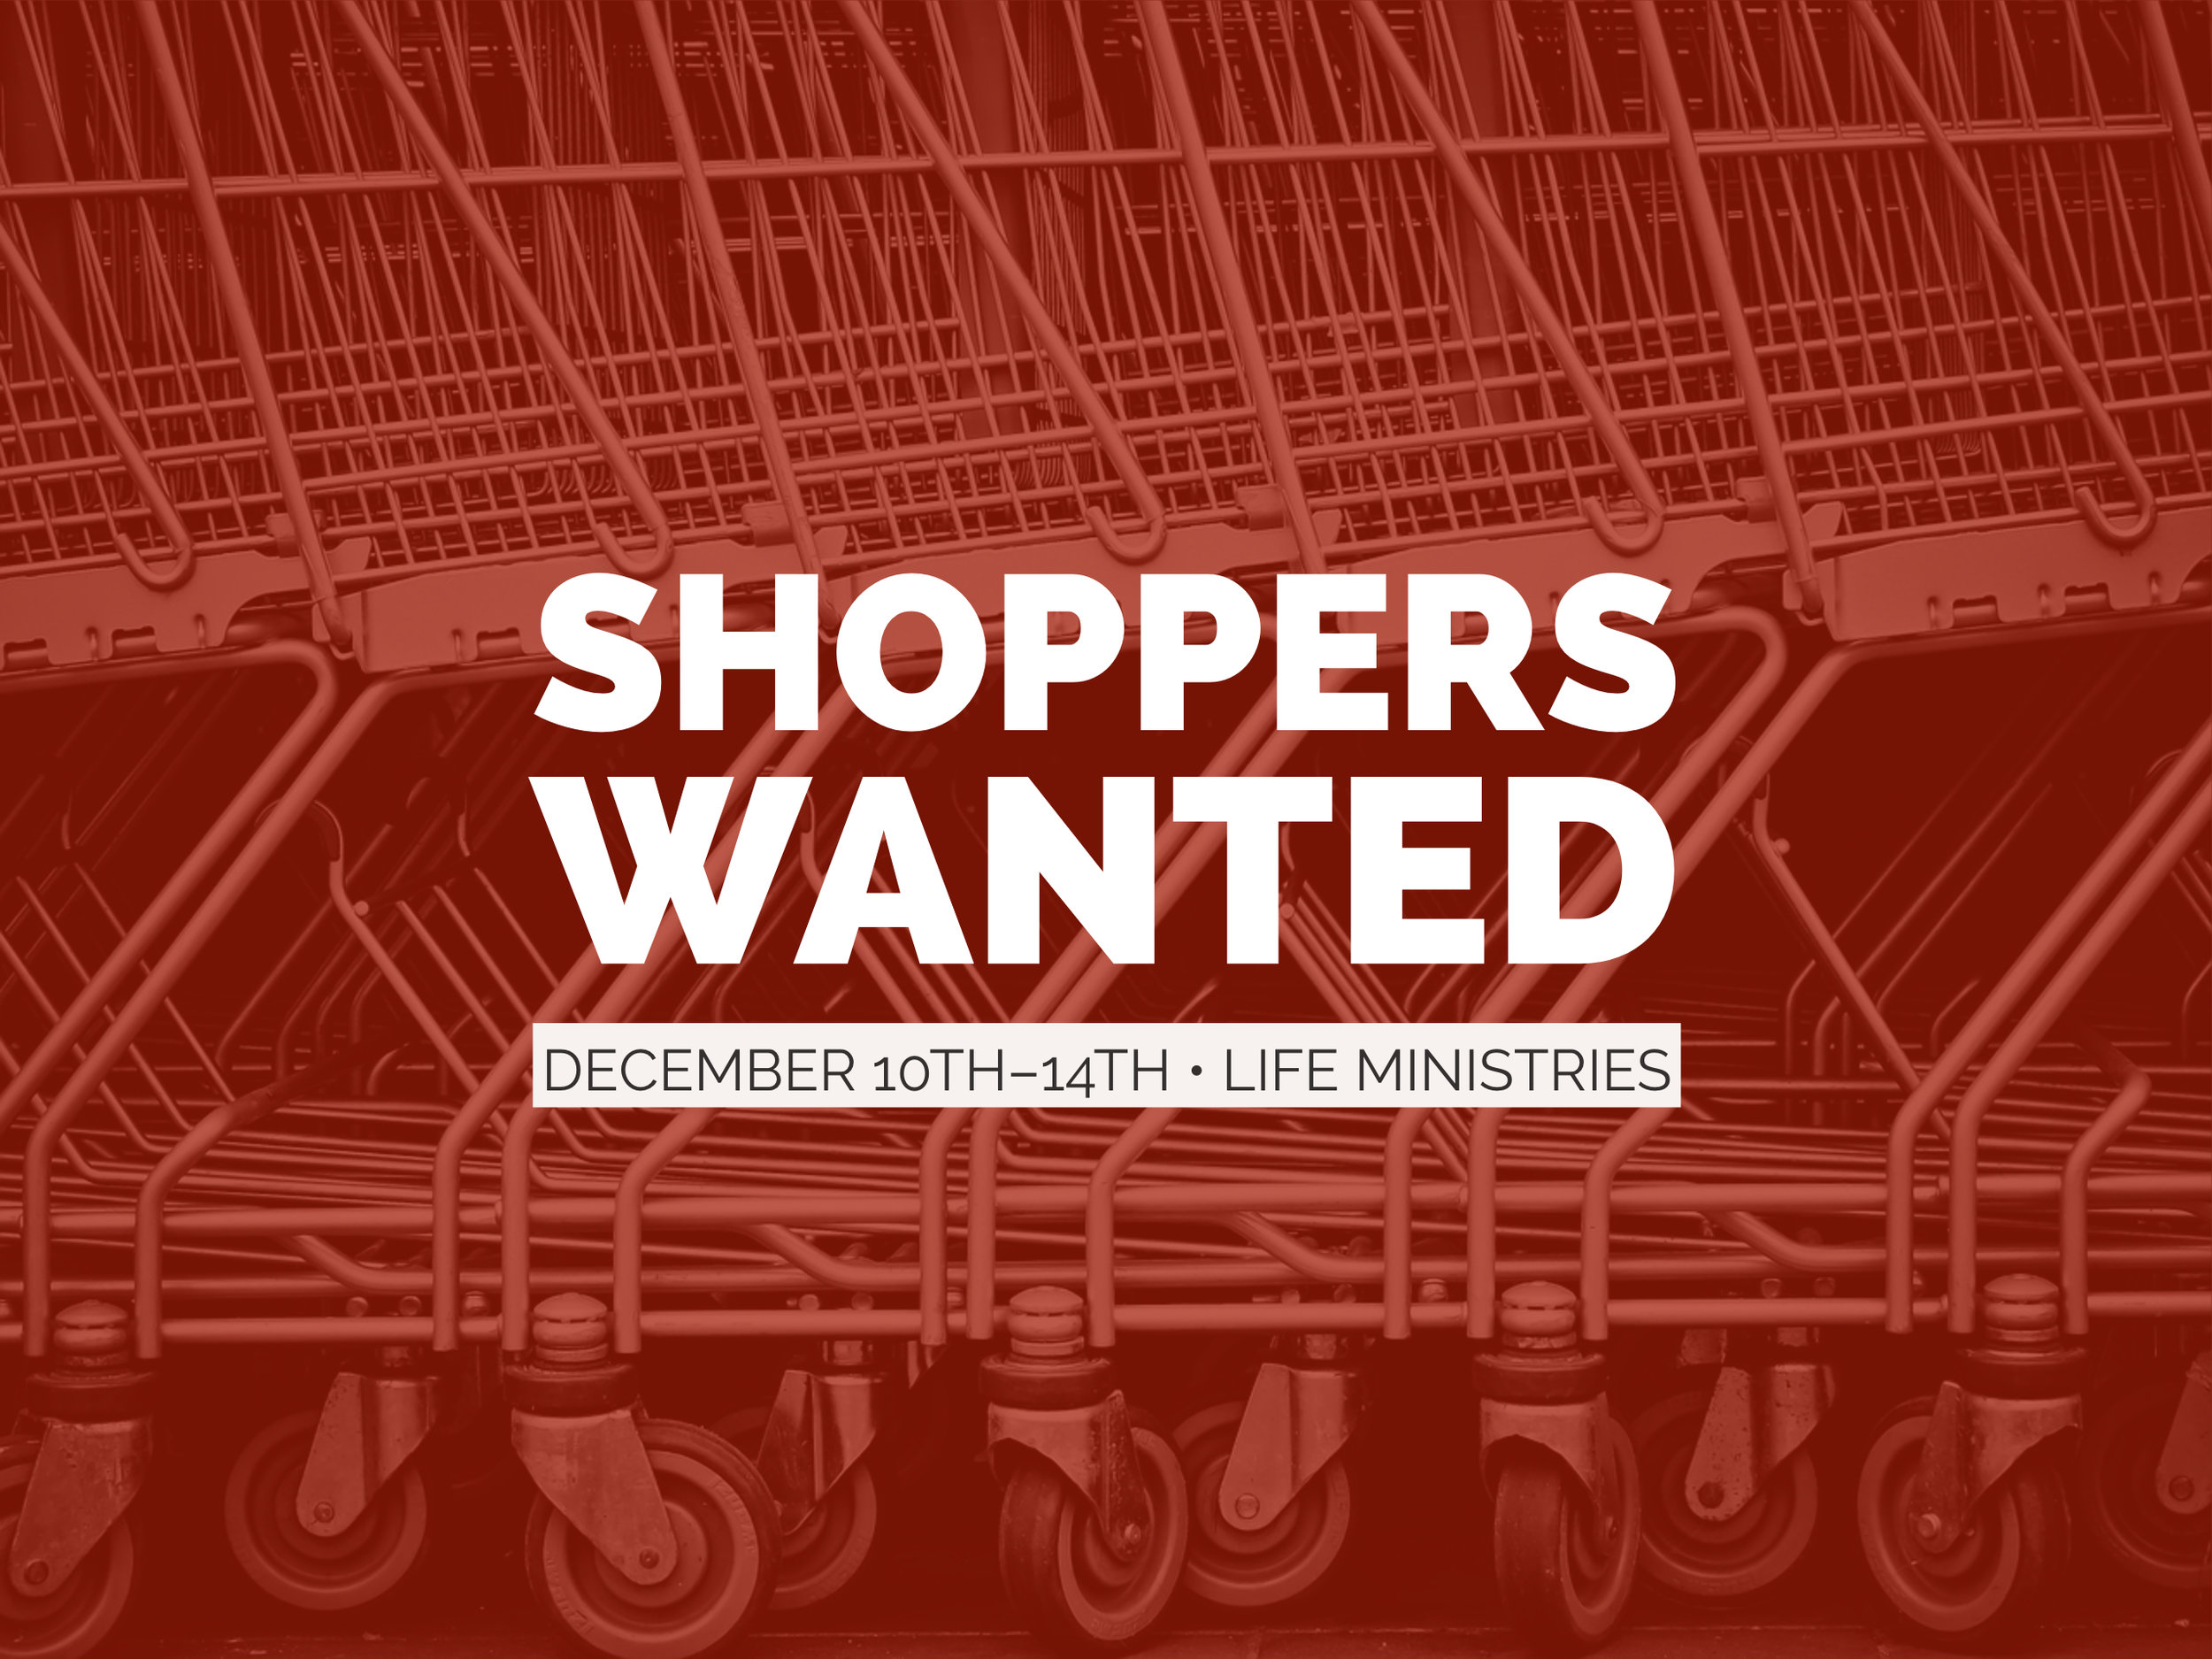 KCJ Christmas Shoppers Wanted with LIFE Ministries on Monday, December 10th-14th